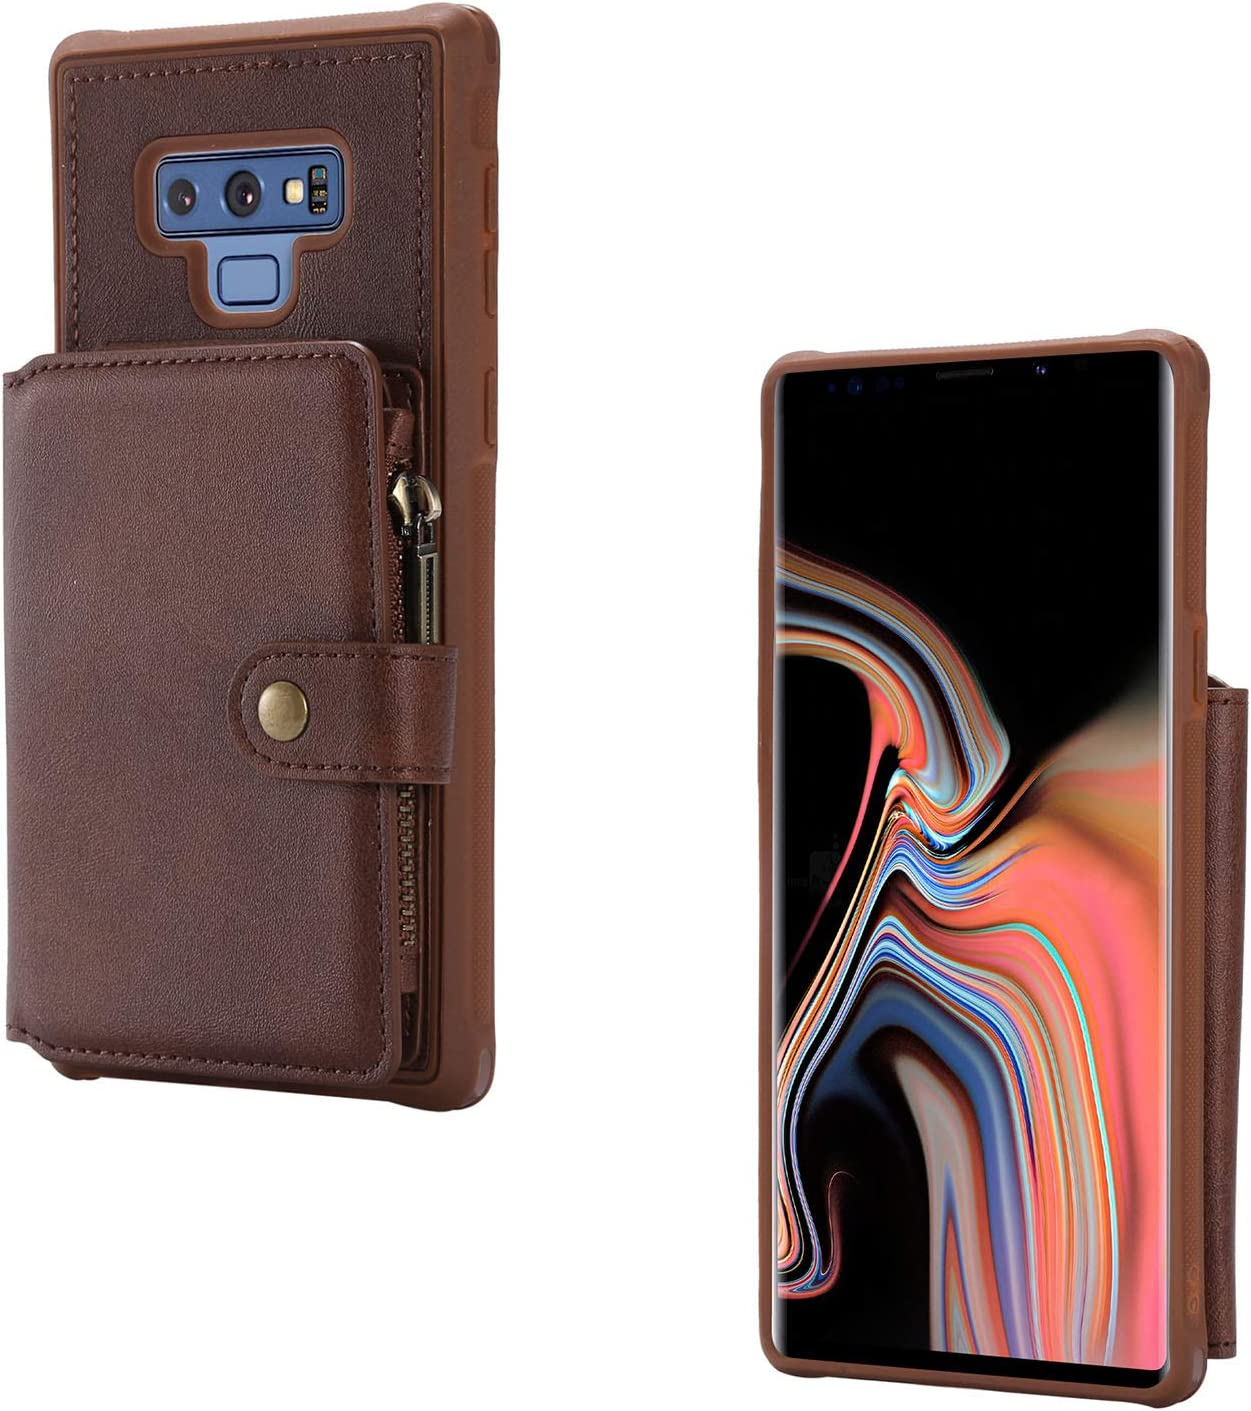 Galaxy Note 9 Case, Note 9 Wallet Case - Techcircle Premium Flip Leather Protective Case with Credit Card Holder [Zipper] Magnetic Closure Purse Designed for Samsung Galaxy Note 9 2018 - Coffee